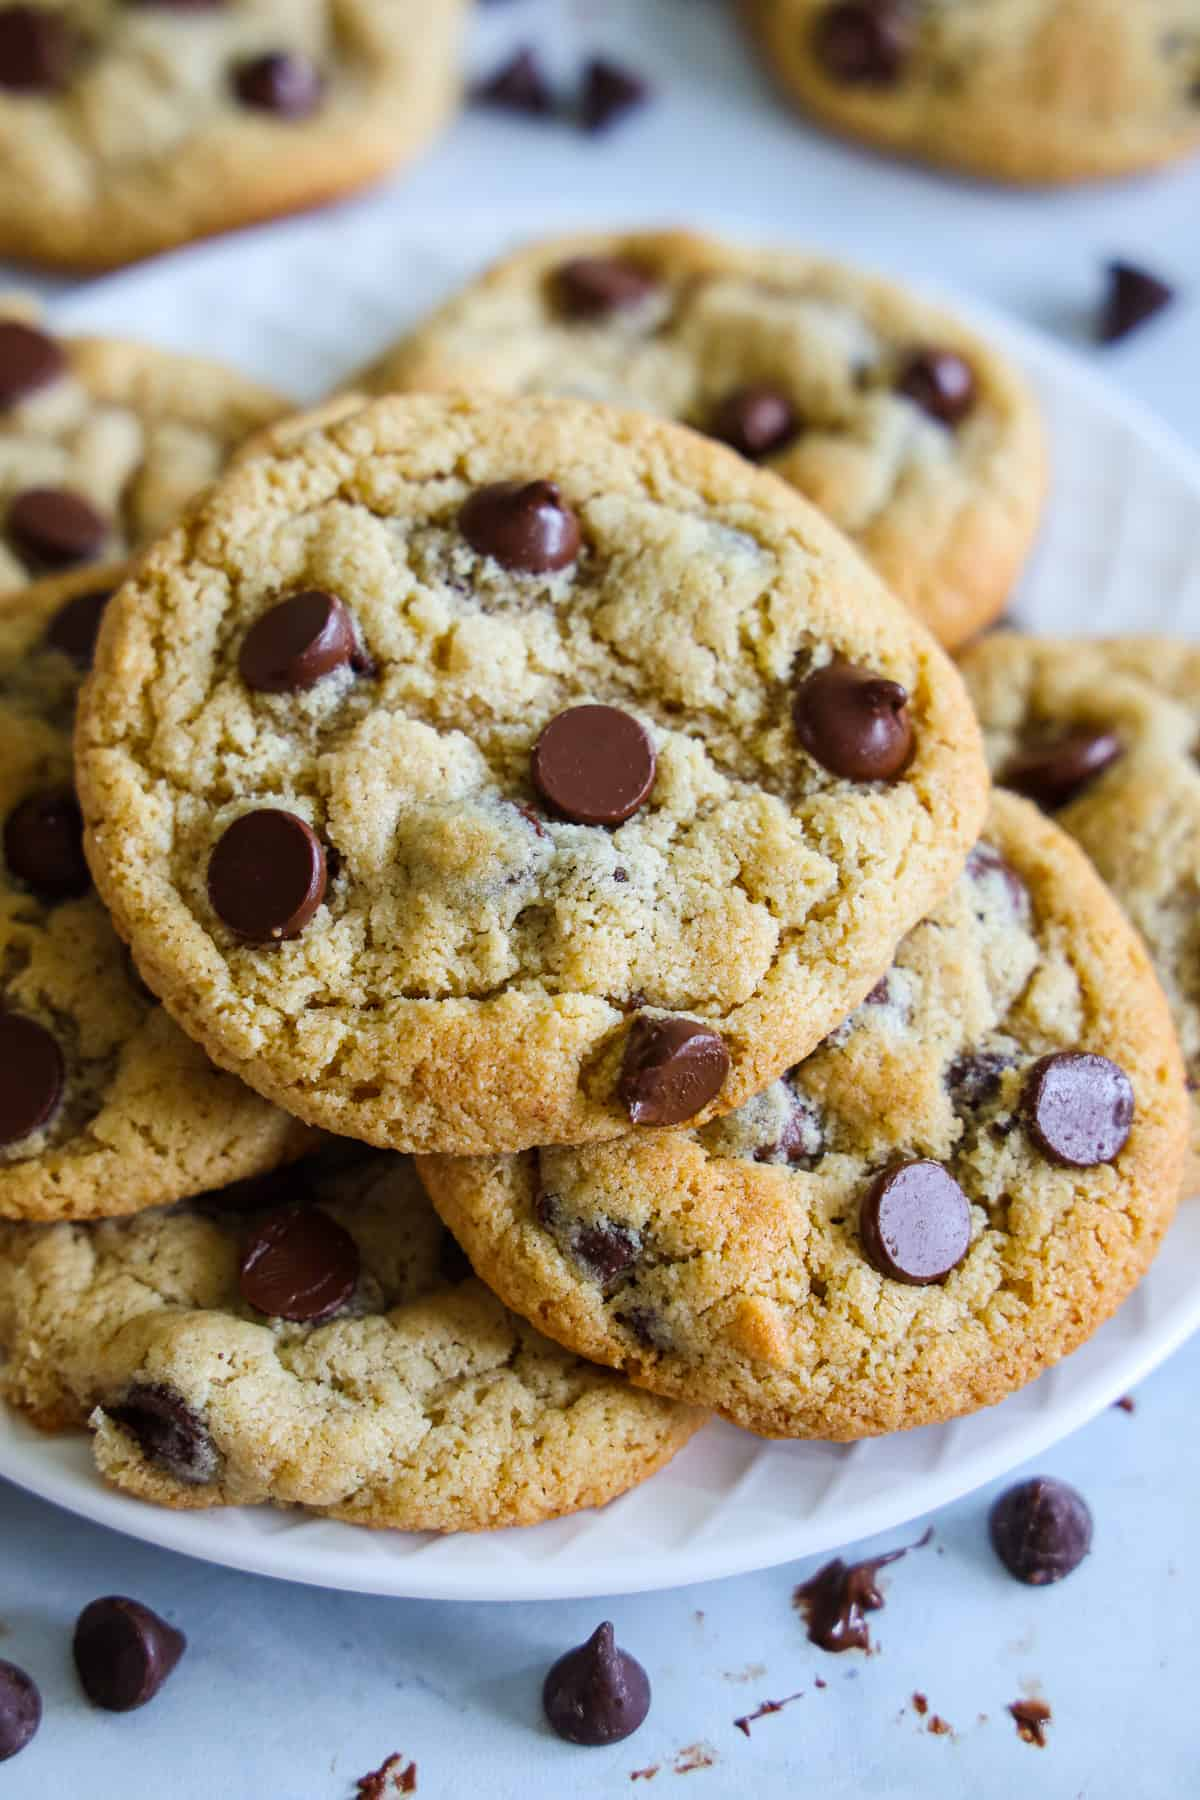 Close up of some Almond Flour Chocolate Chips Cookies on a plate with chocolate chips scattered in the background.